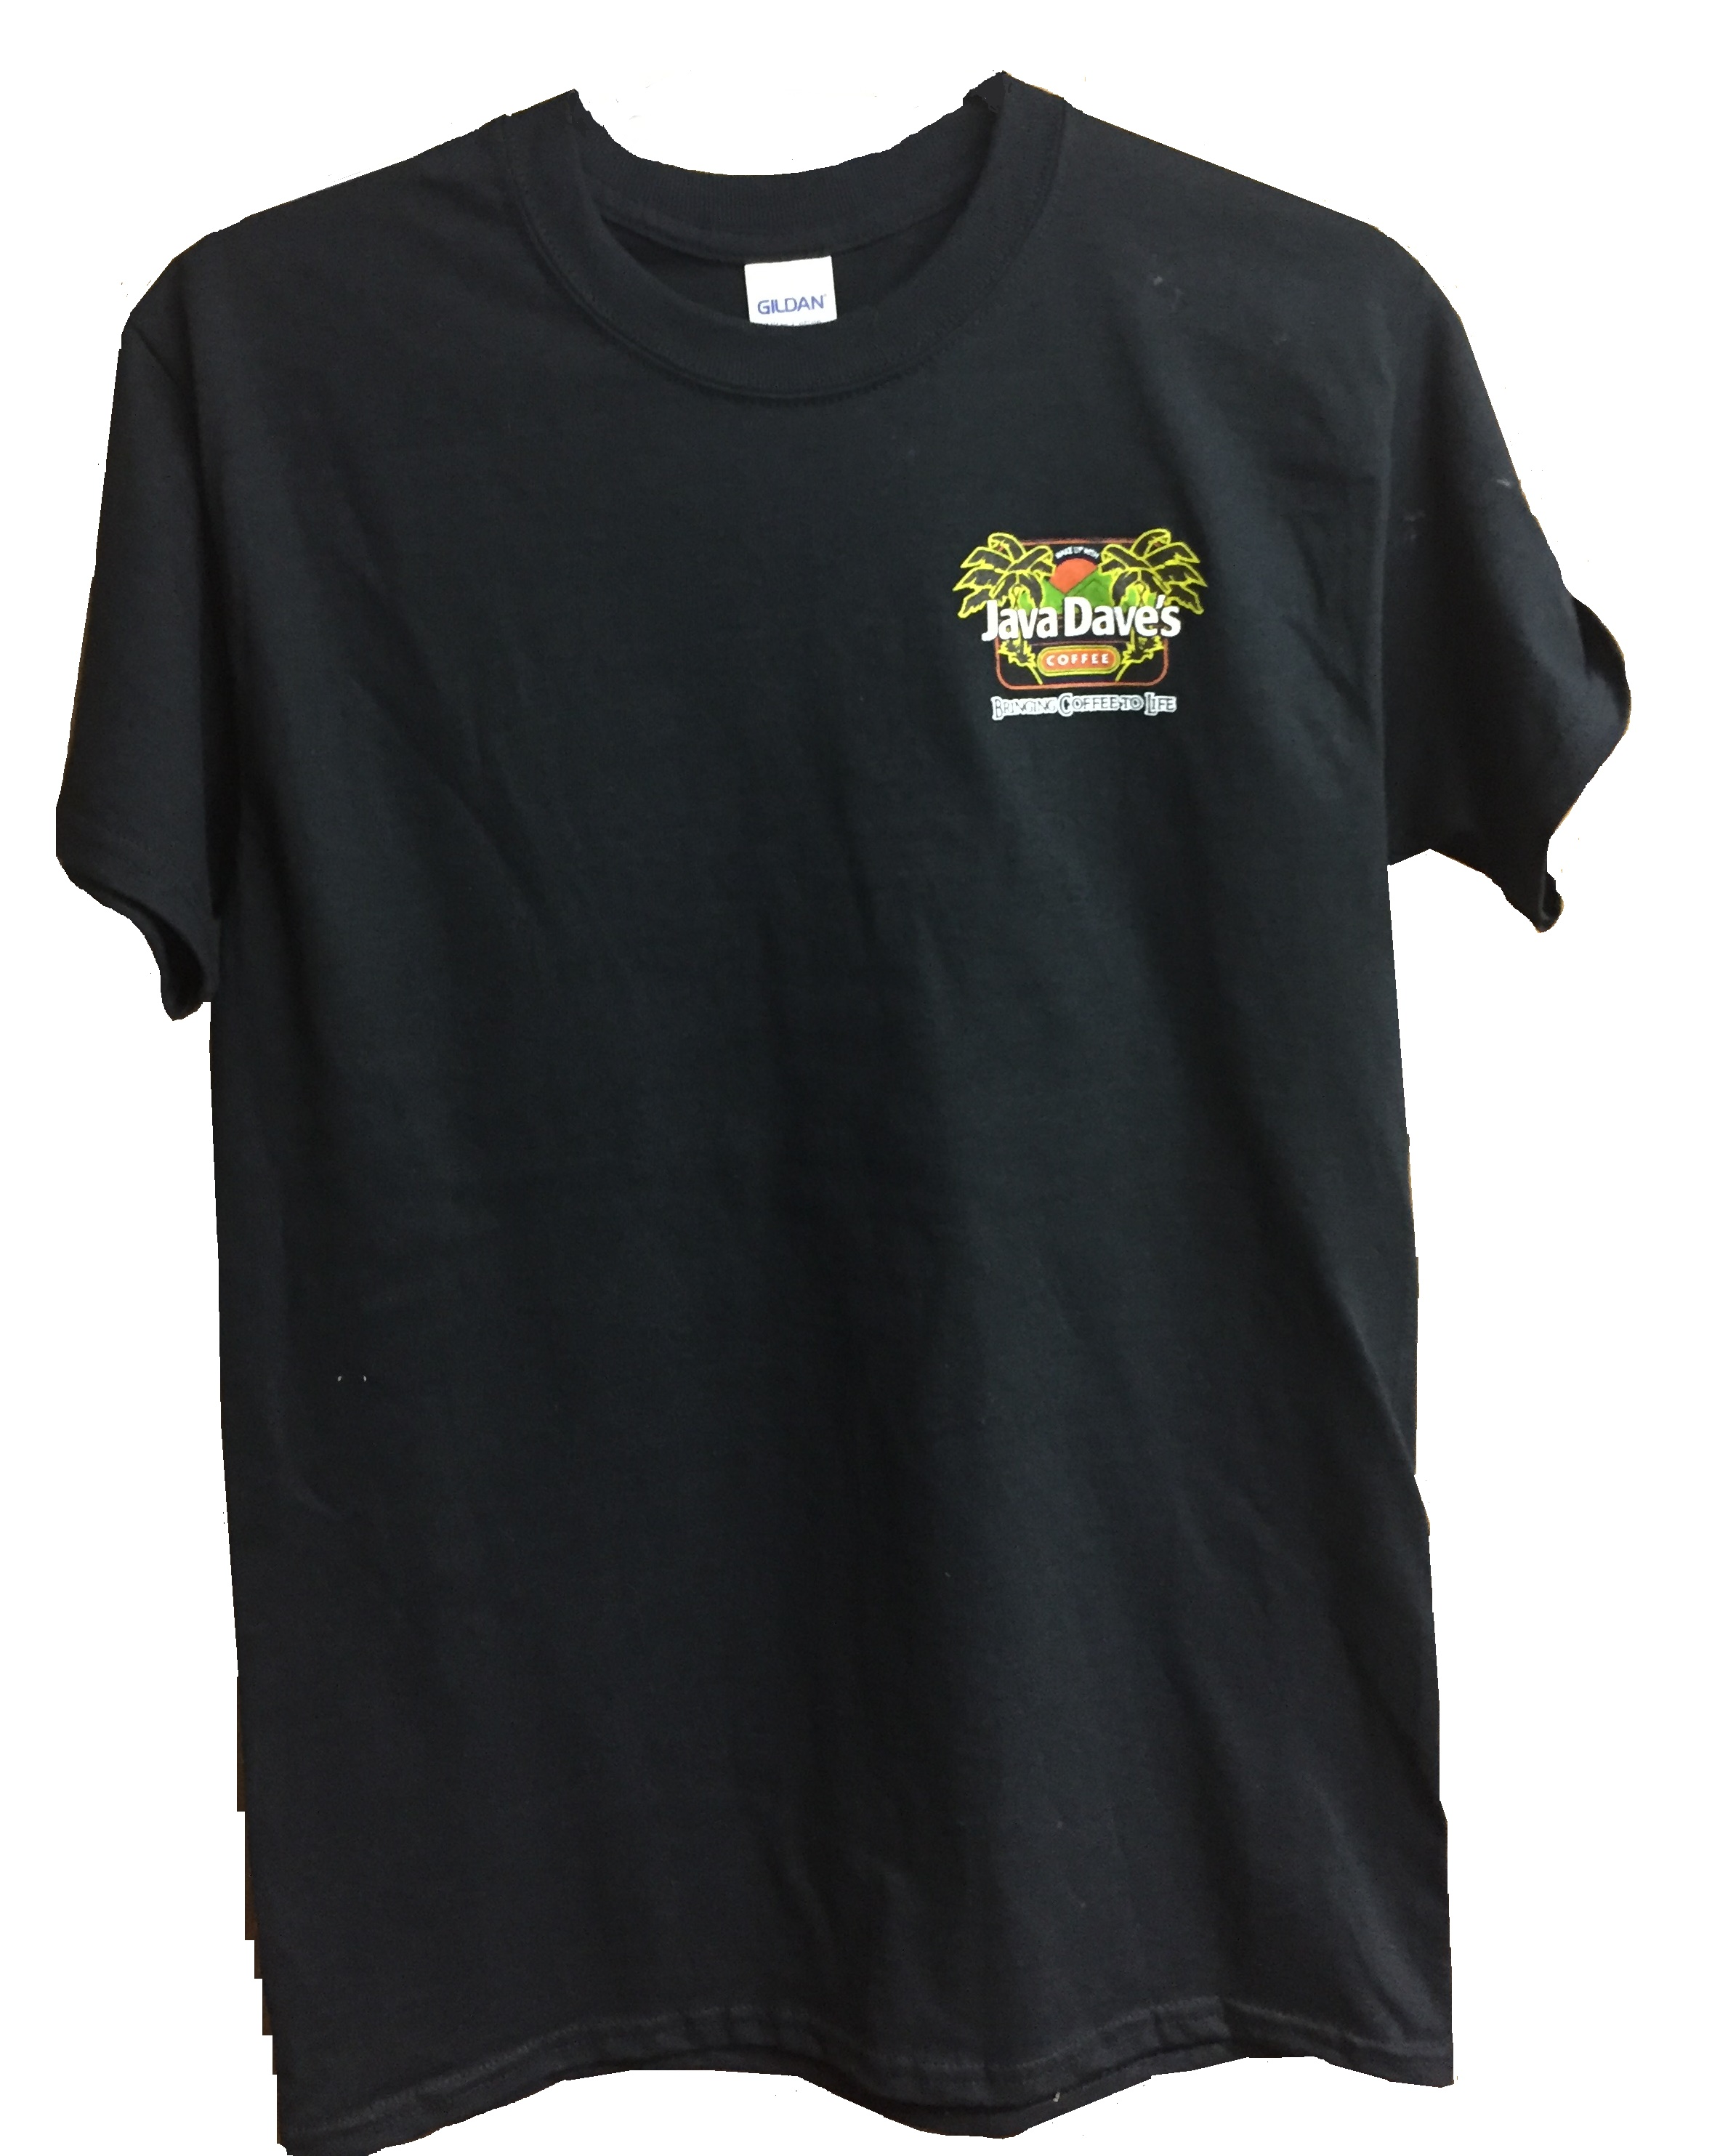 front-of-black-kona-shirt.jpg